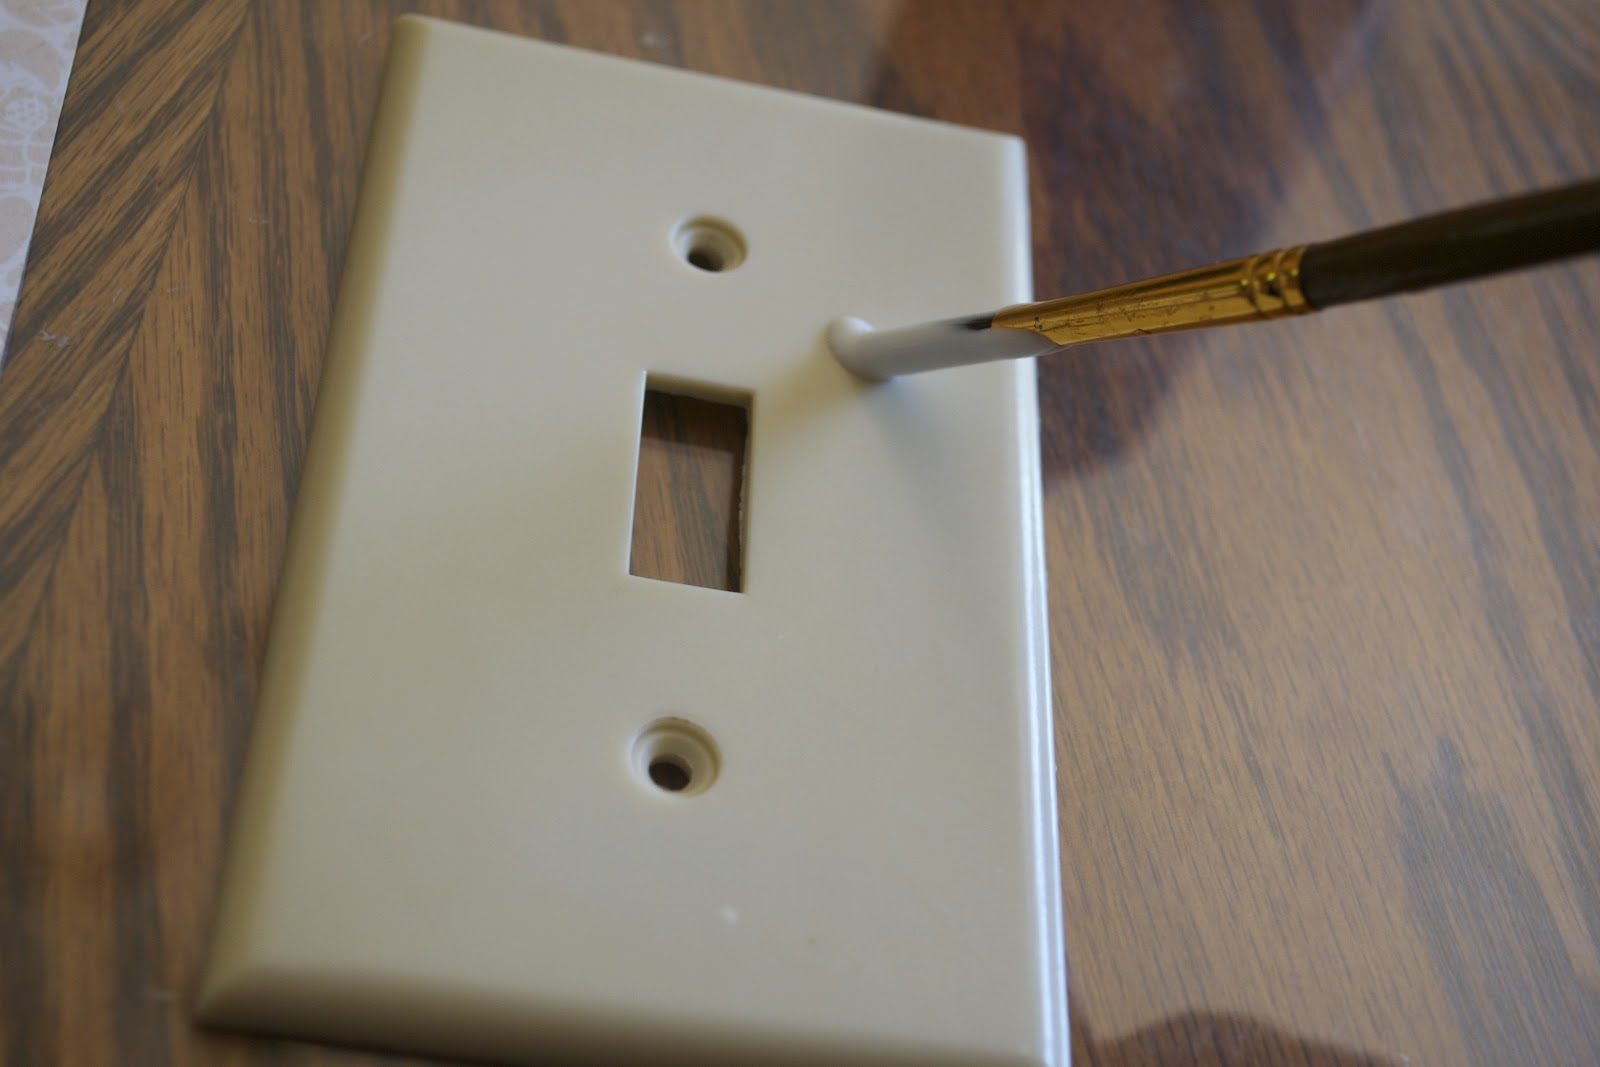 The Ninja Herself: DIY Tutorial: Covered Outlet/Light Switch Faceplate:Lay the faceplate down on the wrong side of the scrapbook paper. Apply  pressure and let it sit for a good while, about 20 minutes I'd say.,Lighting